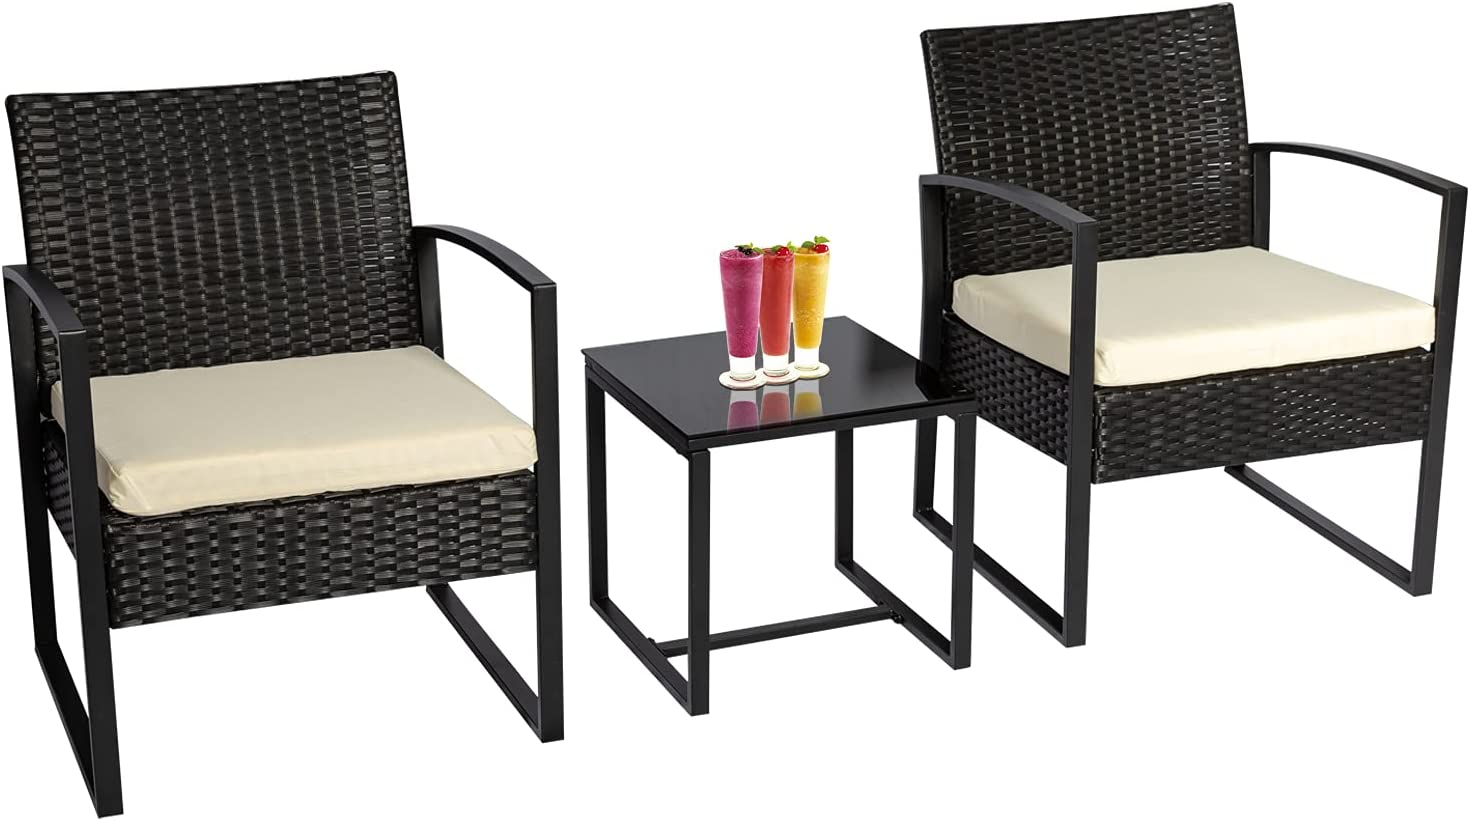 3 Pieces Cheap mail order specialty store Bistro Set Omaha Mall Outdoor Wicker Furniture Patio Sets Rattan